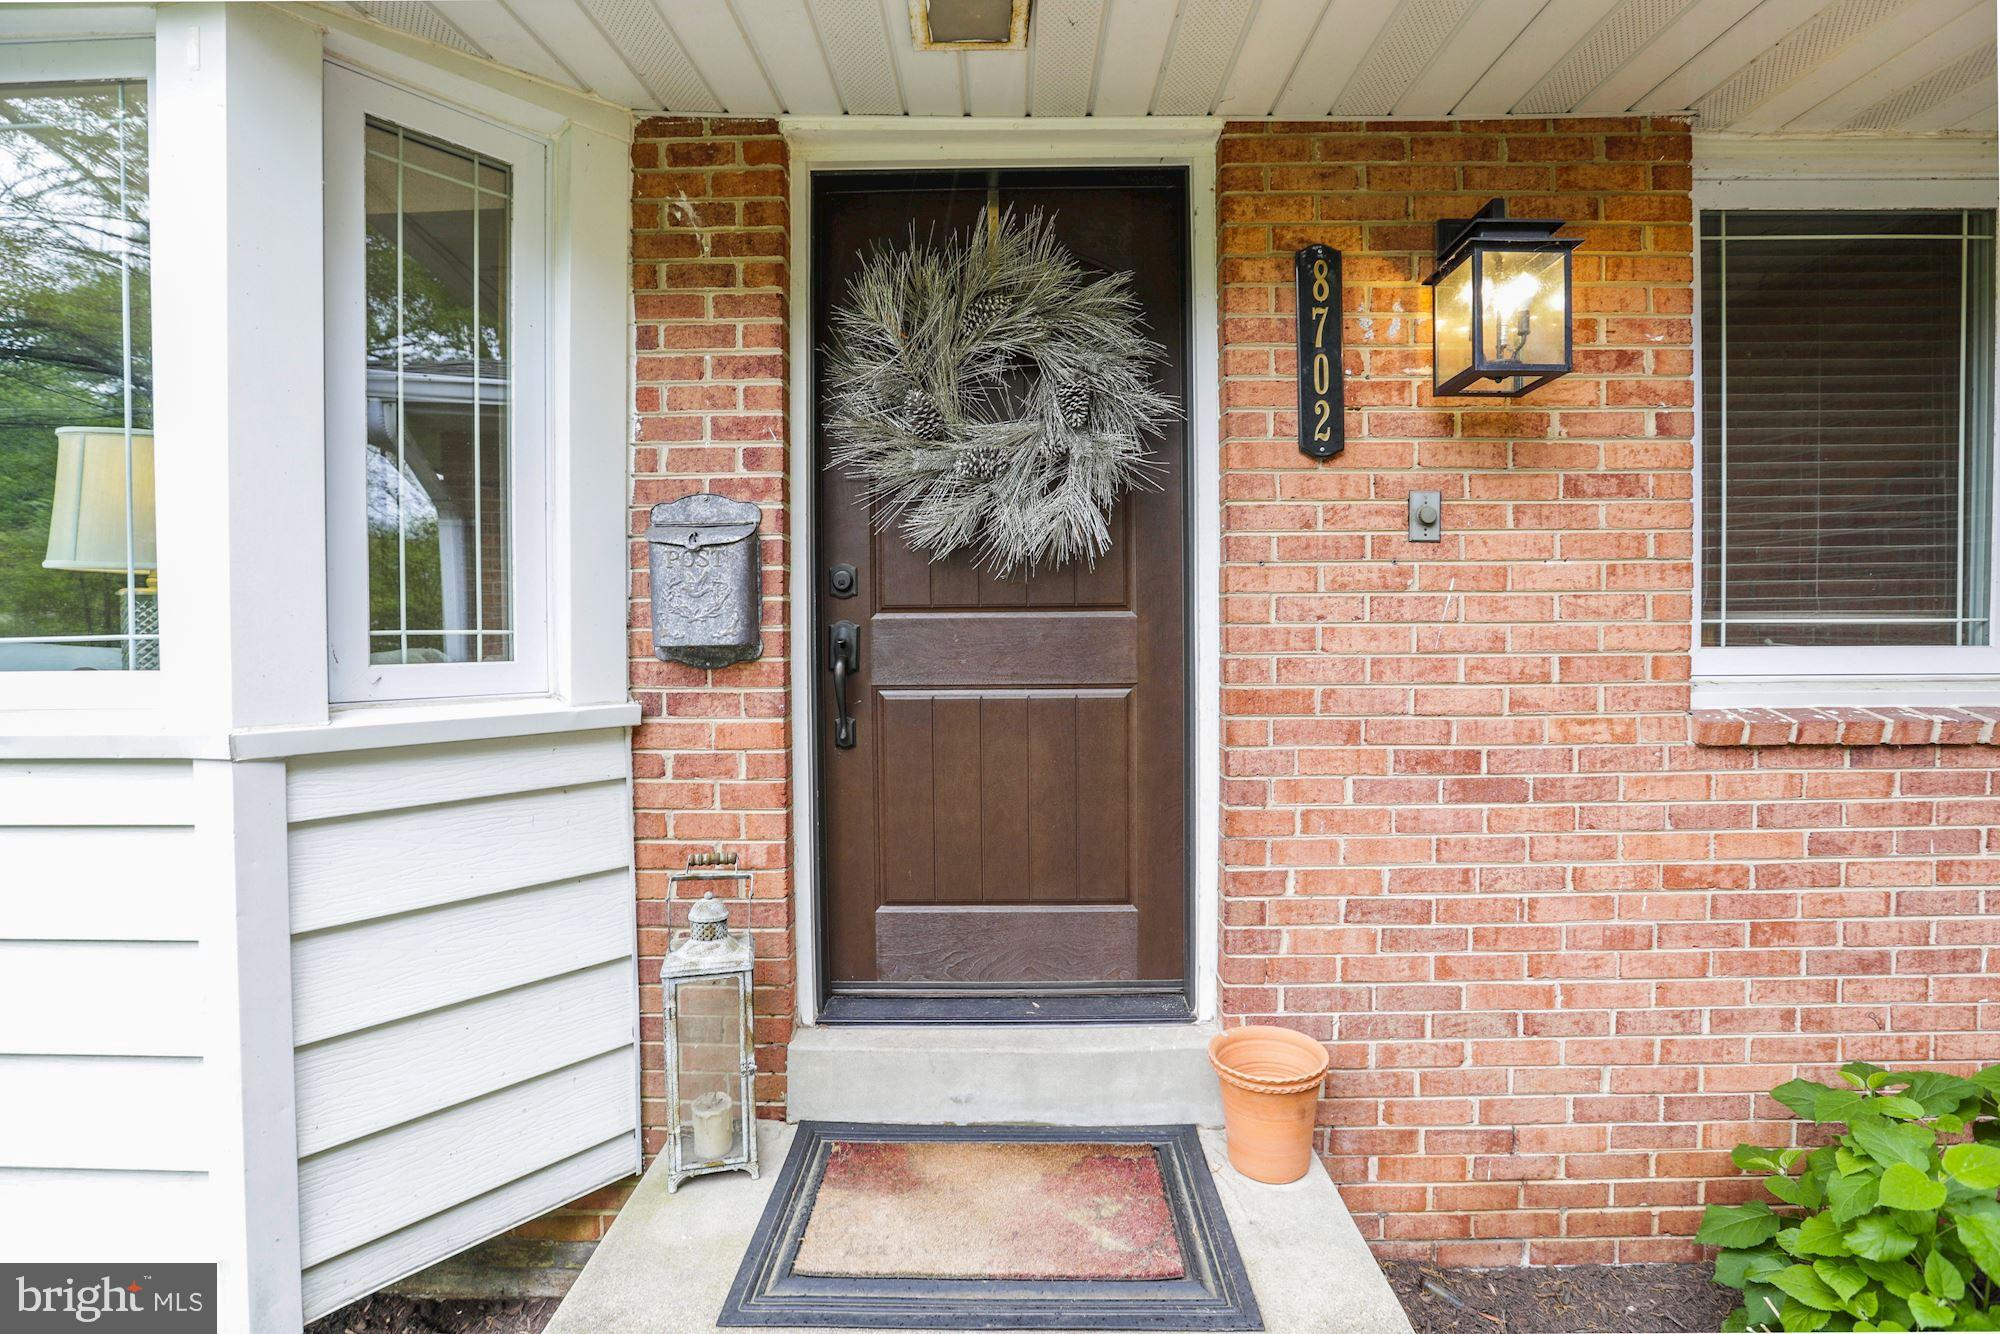 *Excellent Location* Nestled in the heart of Historic Mount Vernon.  Well maintained home with Recently remodeled kitchen, HVAC, New painting, and Windows. Jogging, Biking along the Potomac River. Convenient to FT Belvoir.